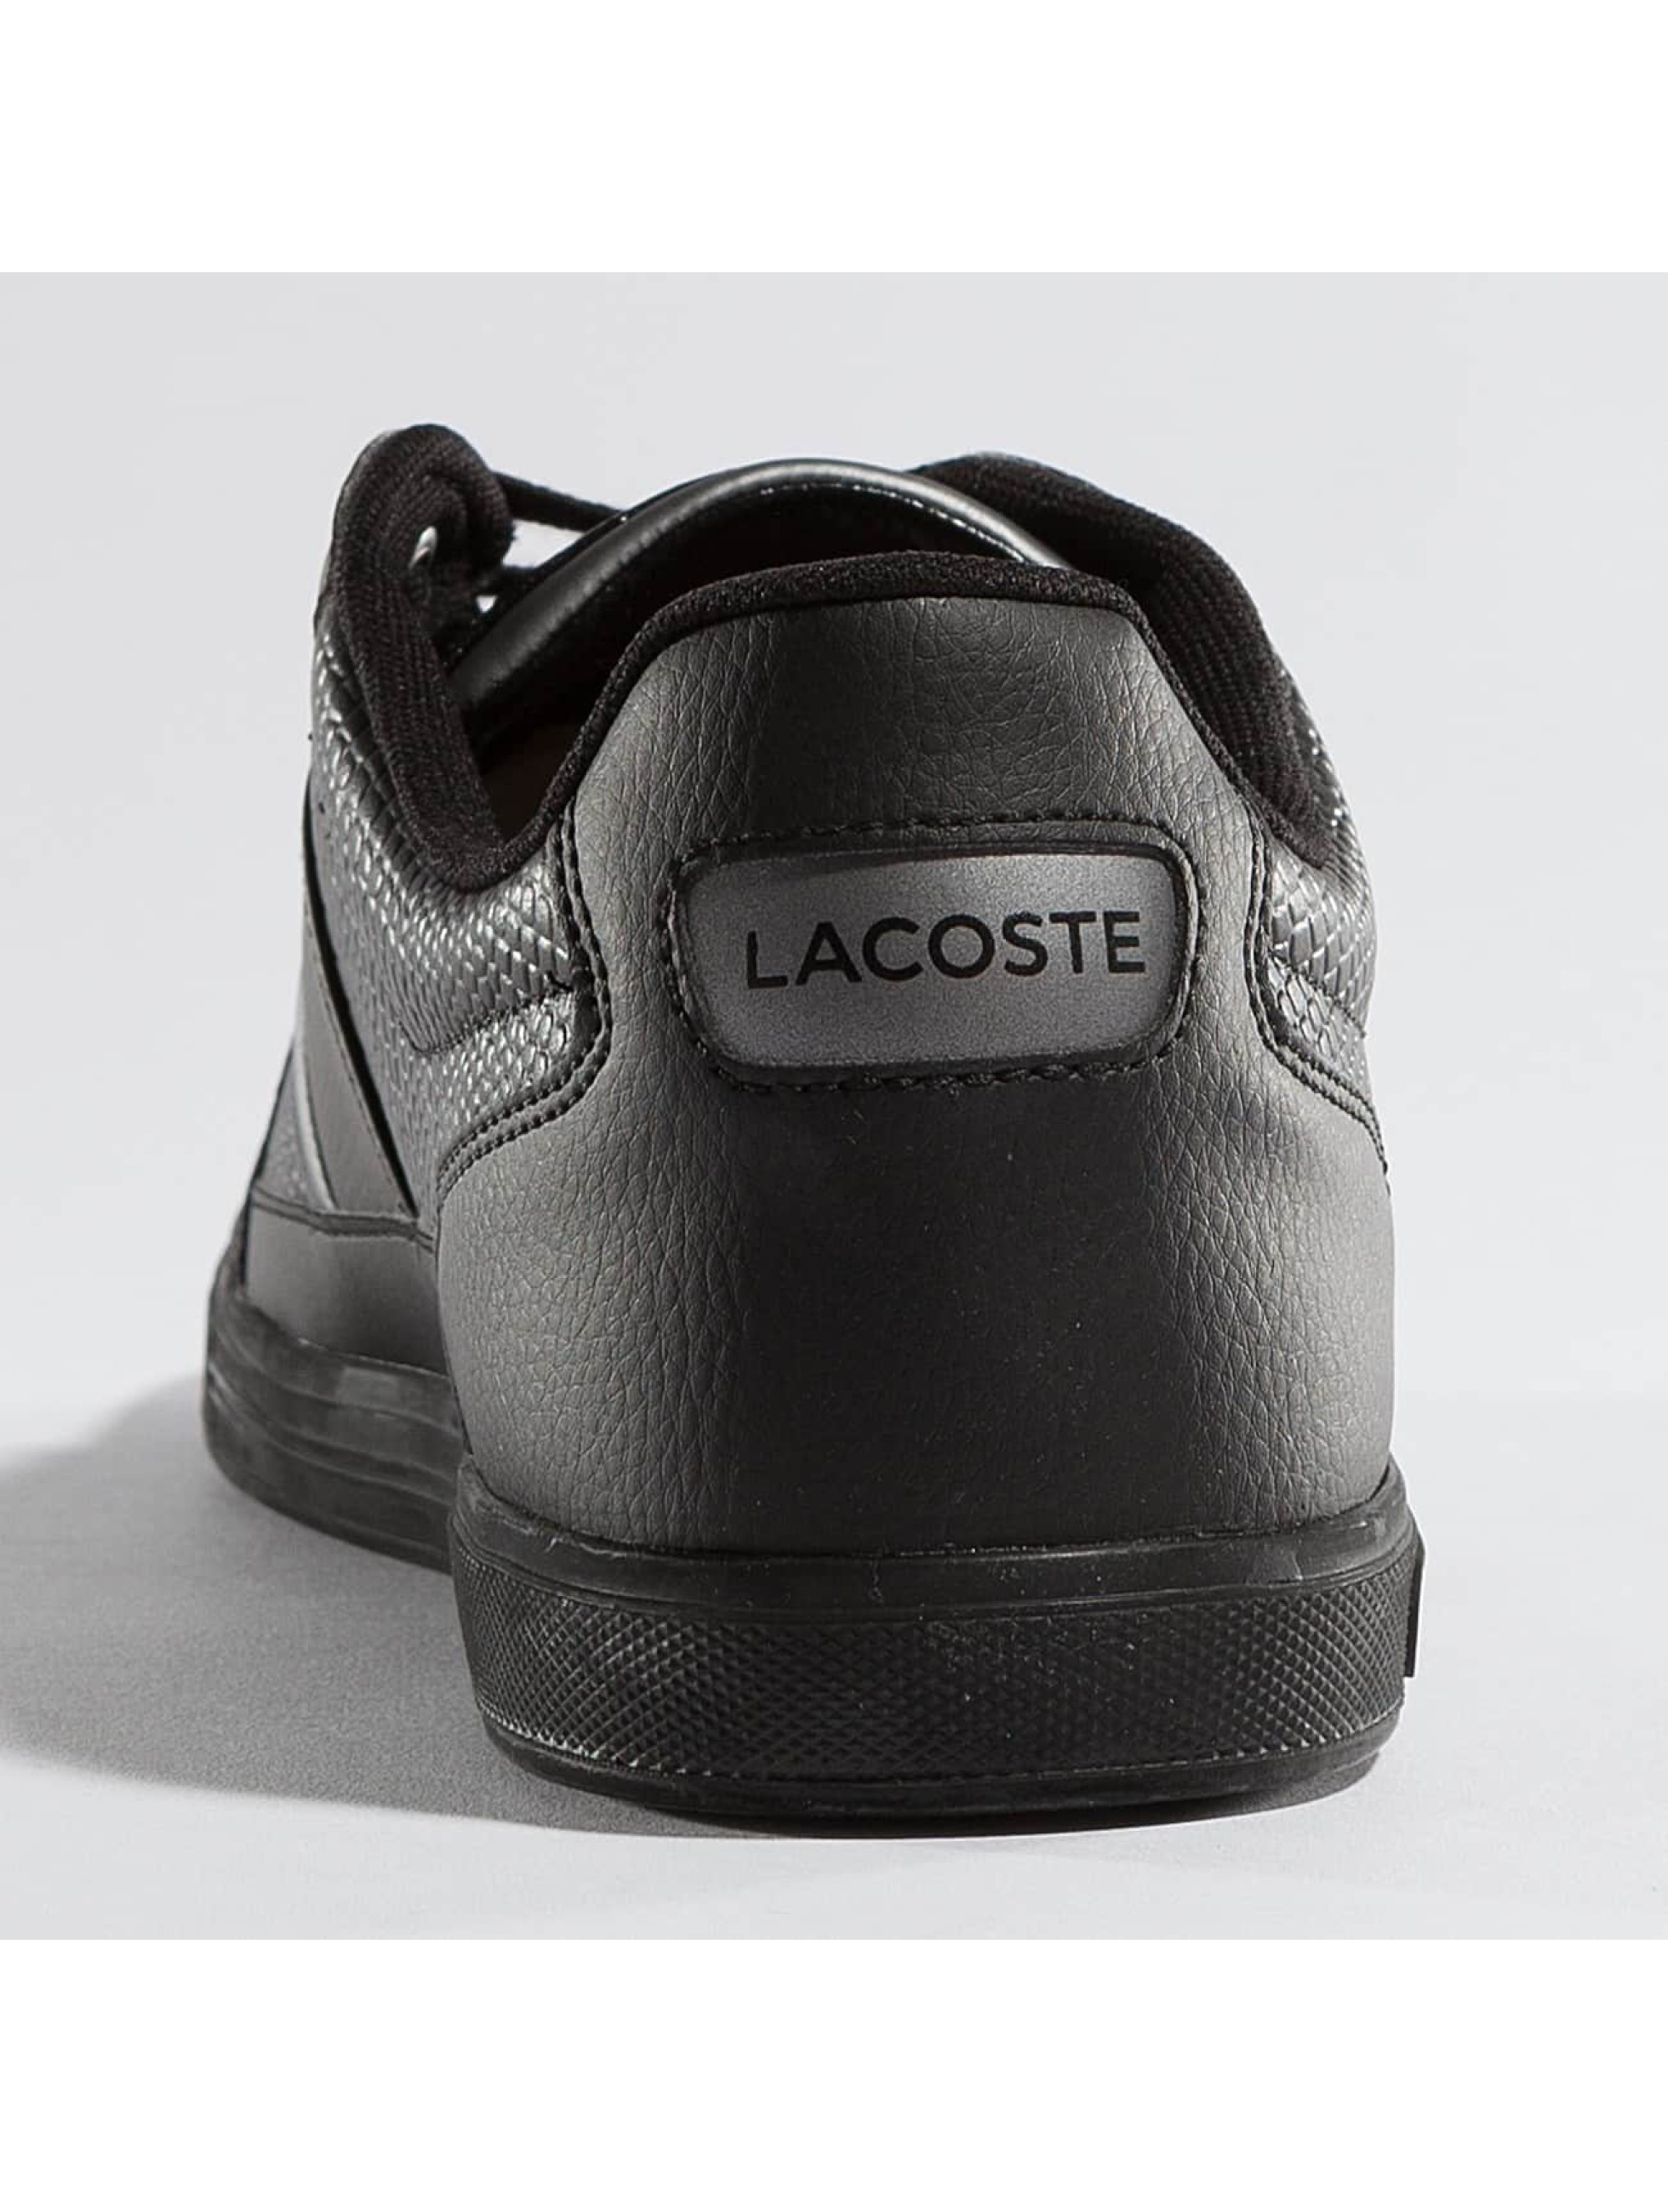 lacoste europa 417 spm noir homme baskets lacoste acheter pas cher chaussures 336323. Black Bedroom Furniture Sets. Home Design Ideas